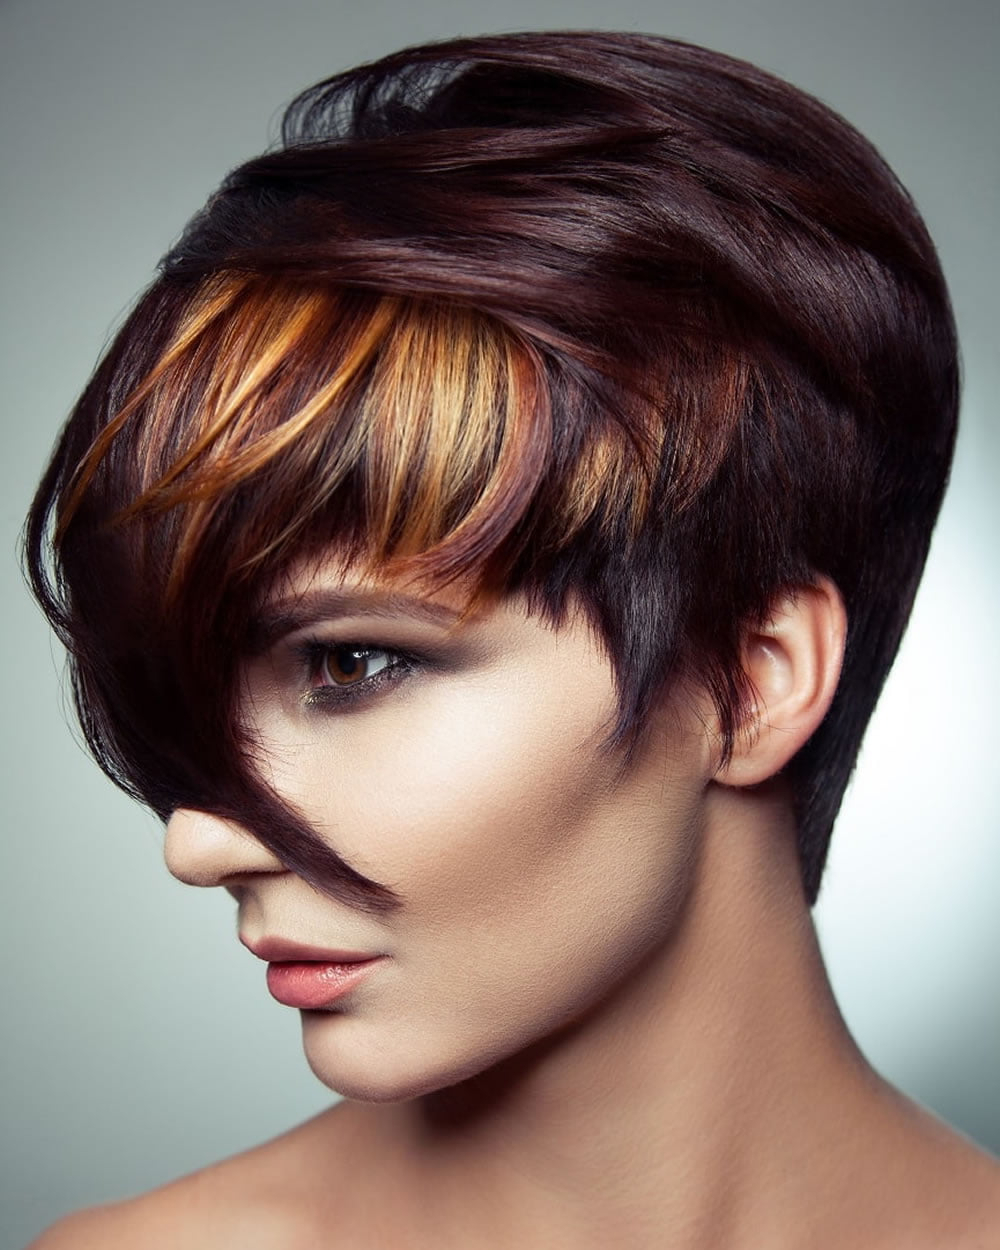 Short Pixie Haircuts With Bangs For Fine Hair 2018 2019 Regarding Most Recently Released Pixie Cut Hairstyles (View 13 of 20)